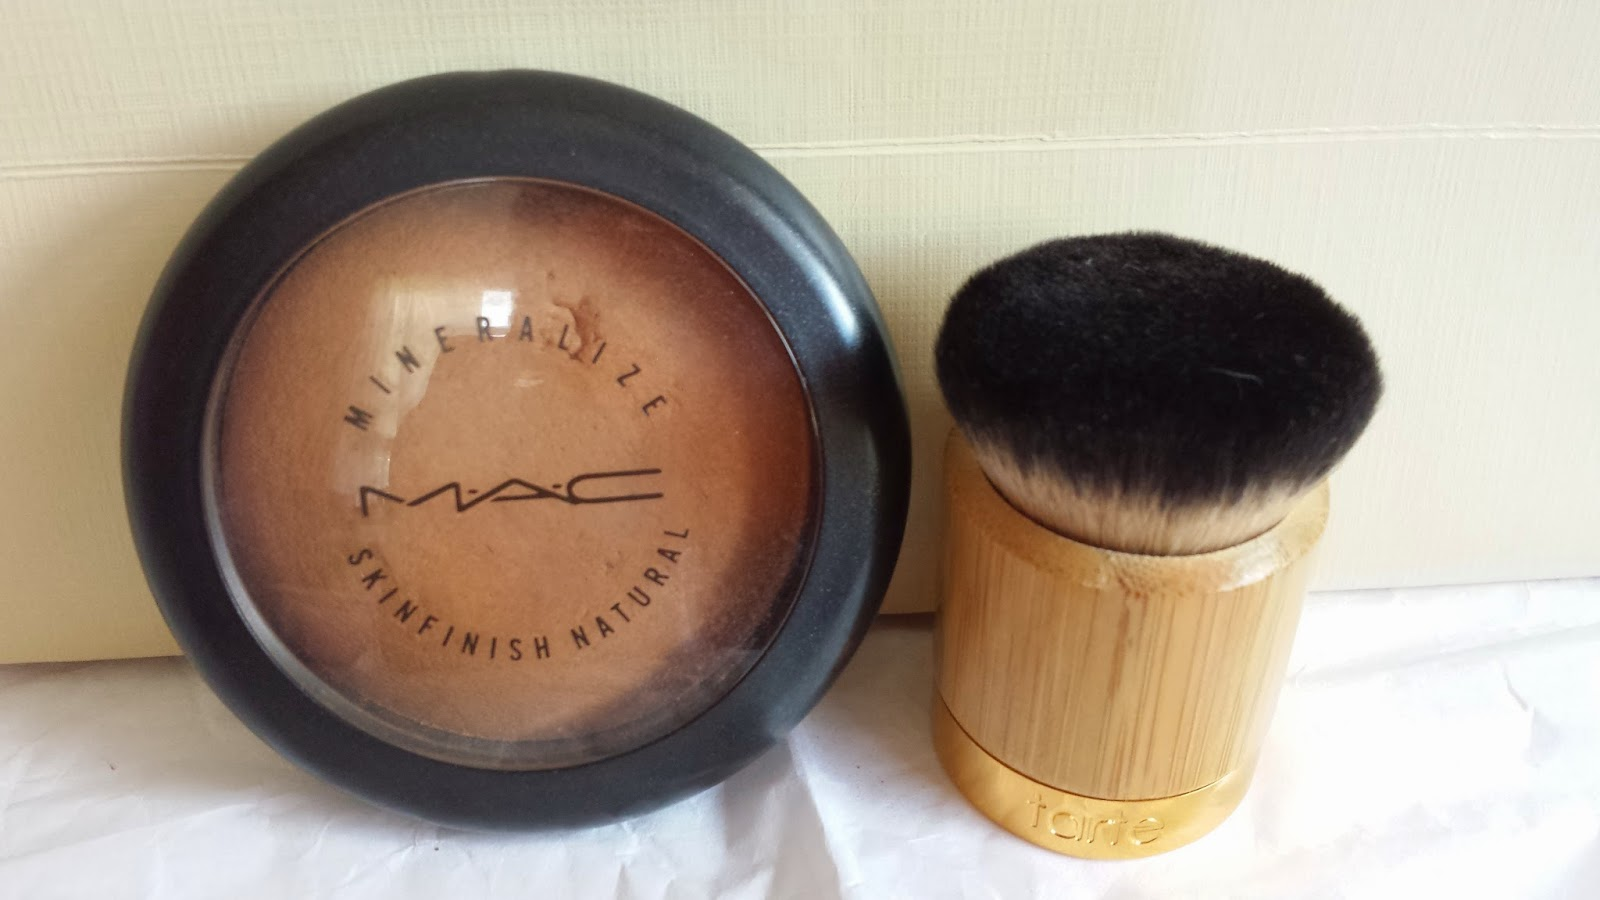 M.A.C Mineralized Skinfinish Natural in 'Dark' - www.modenmakeup.com